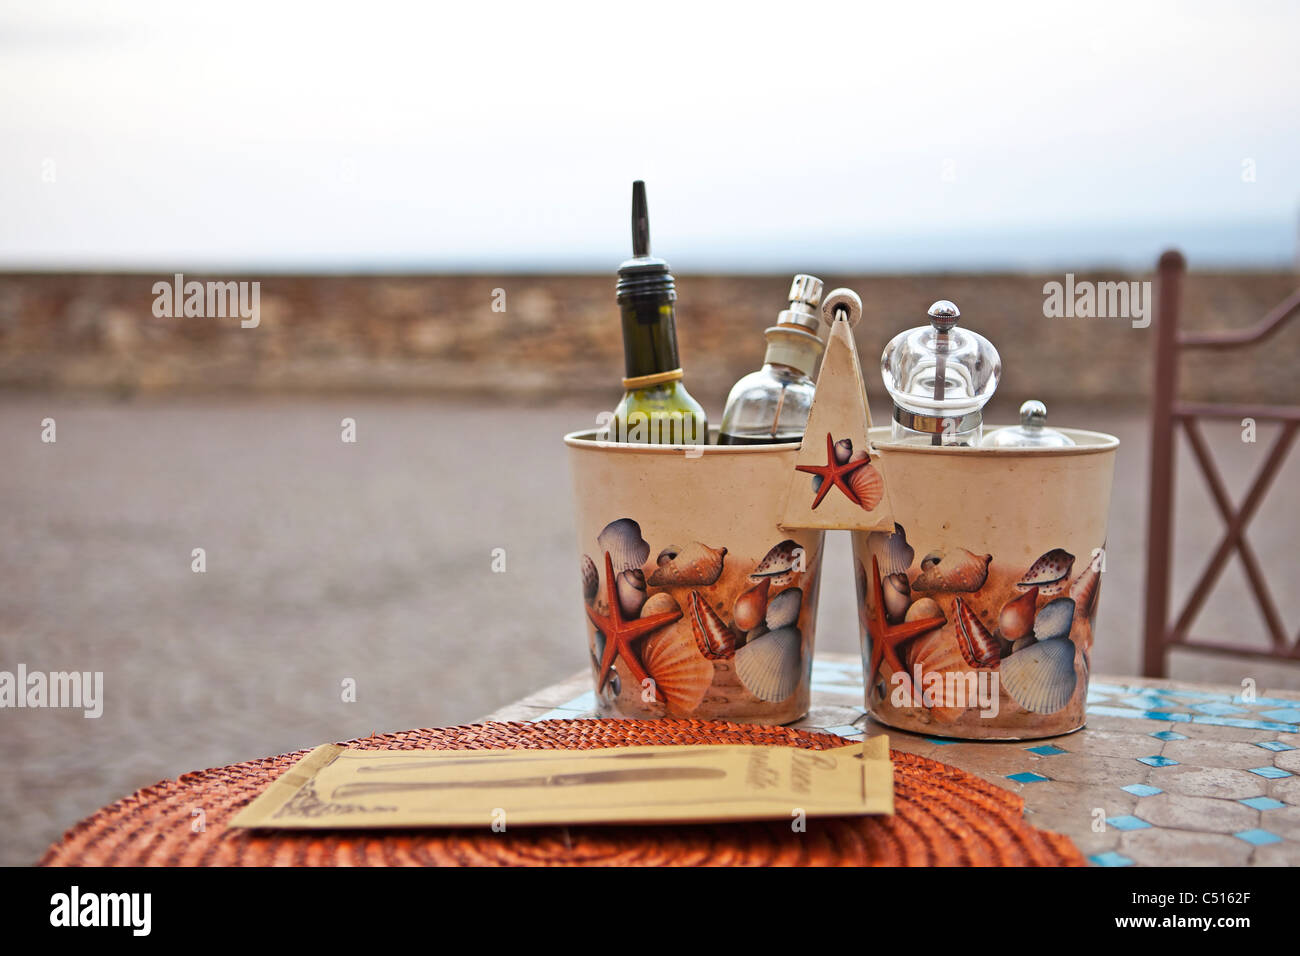 Laid table in Cervo, Liguria, overlooking the Mediterranean - Stock Image